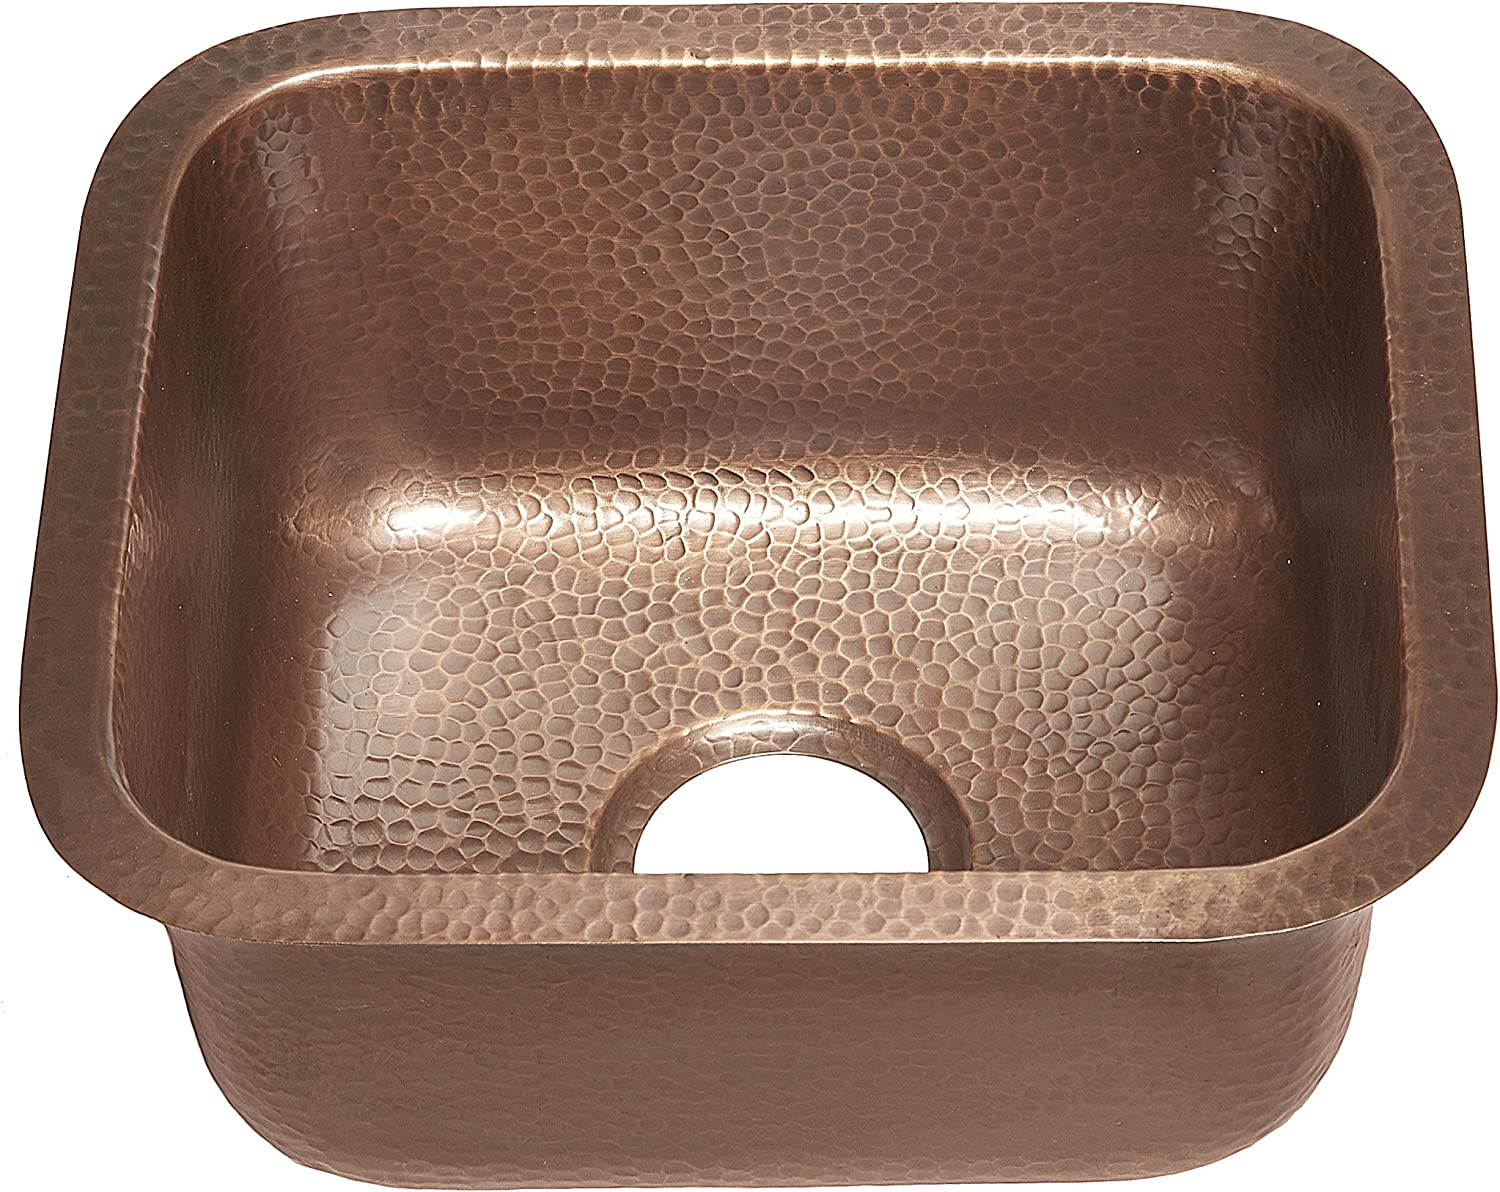 Sinkology Sisley 17-inch Bar Prep Copper Sink in Hammered Antique copper